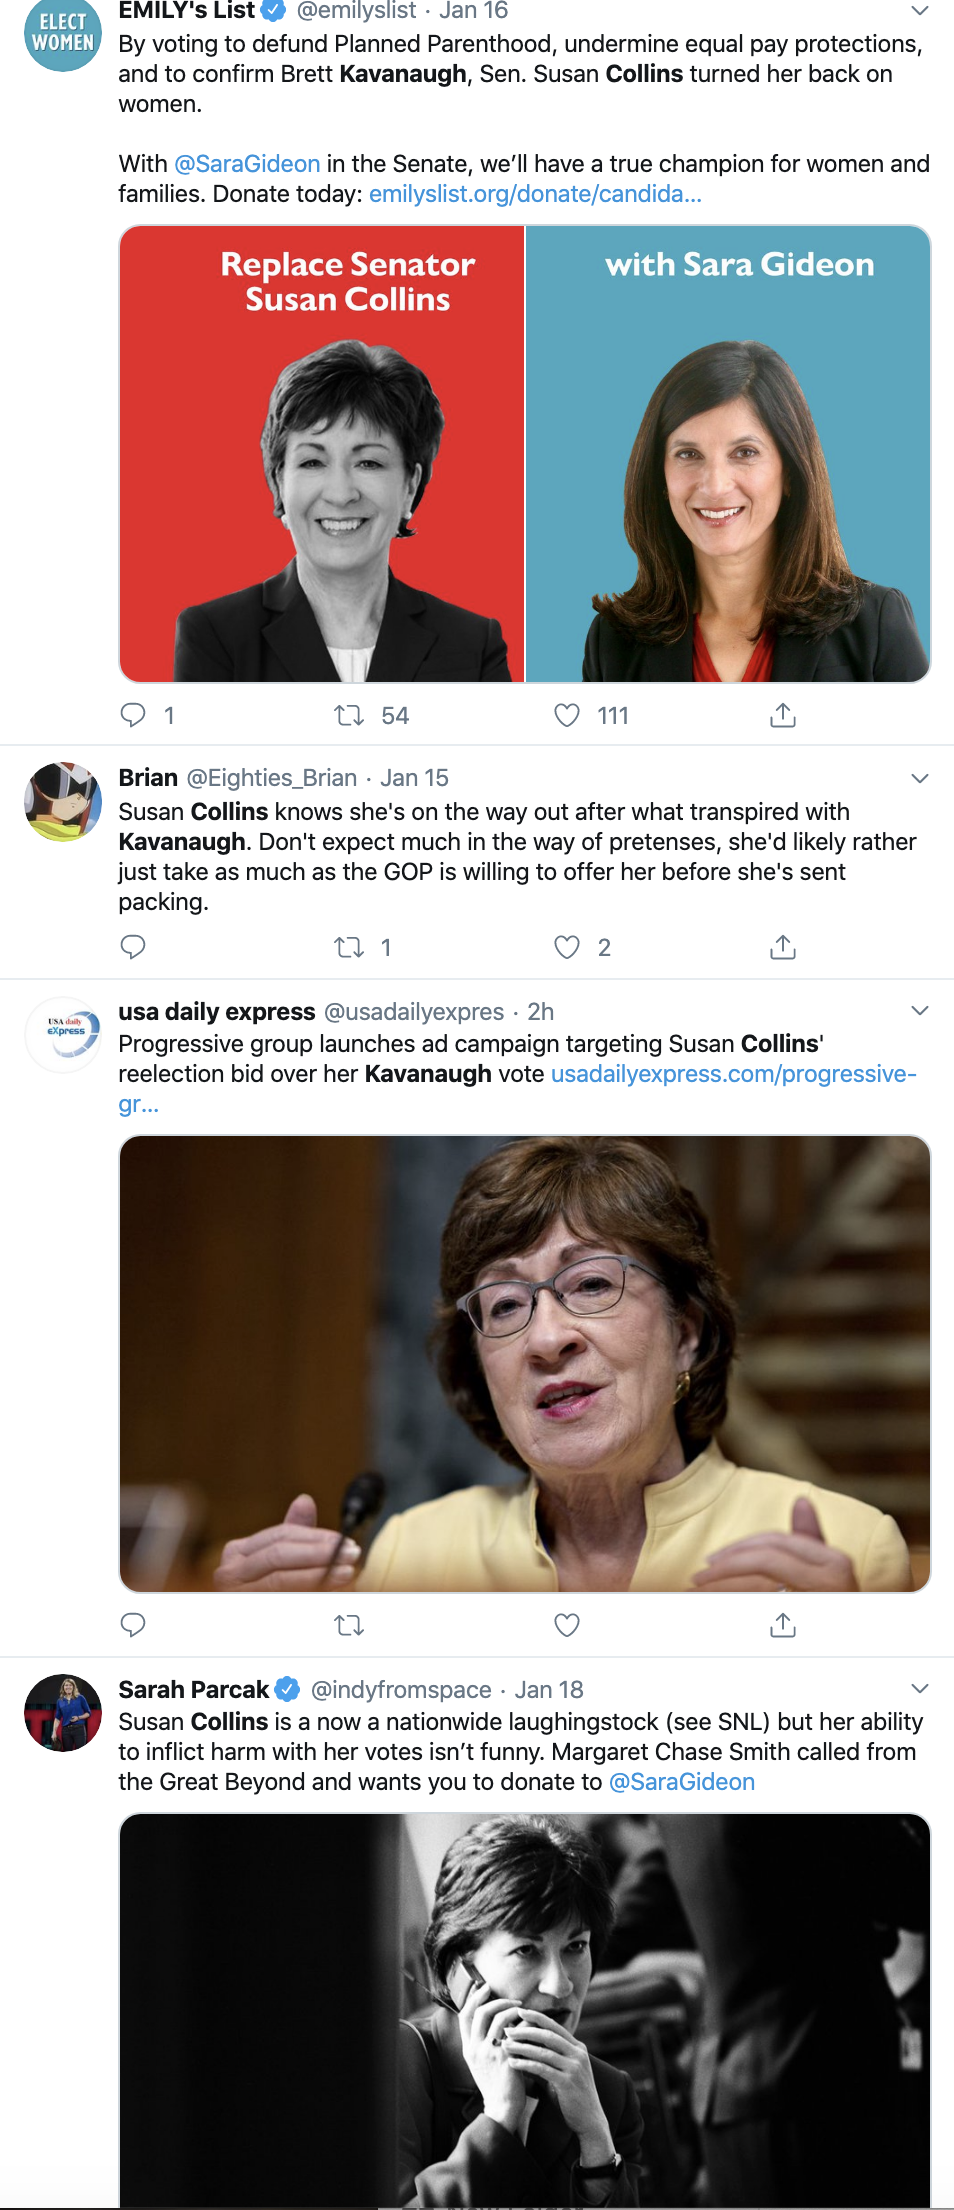 Screen-Shot-2020-01-21-at-11.12.50-AM Susan Collins' Opponent Gets Ringing Endorsement Abortion Featured Feminism Top Stories Women's Rights